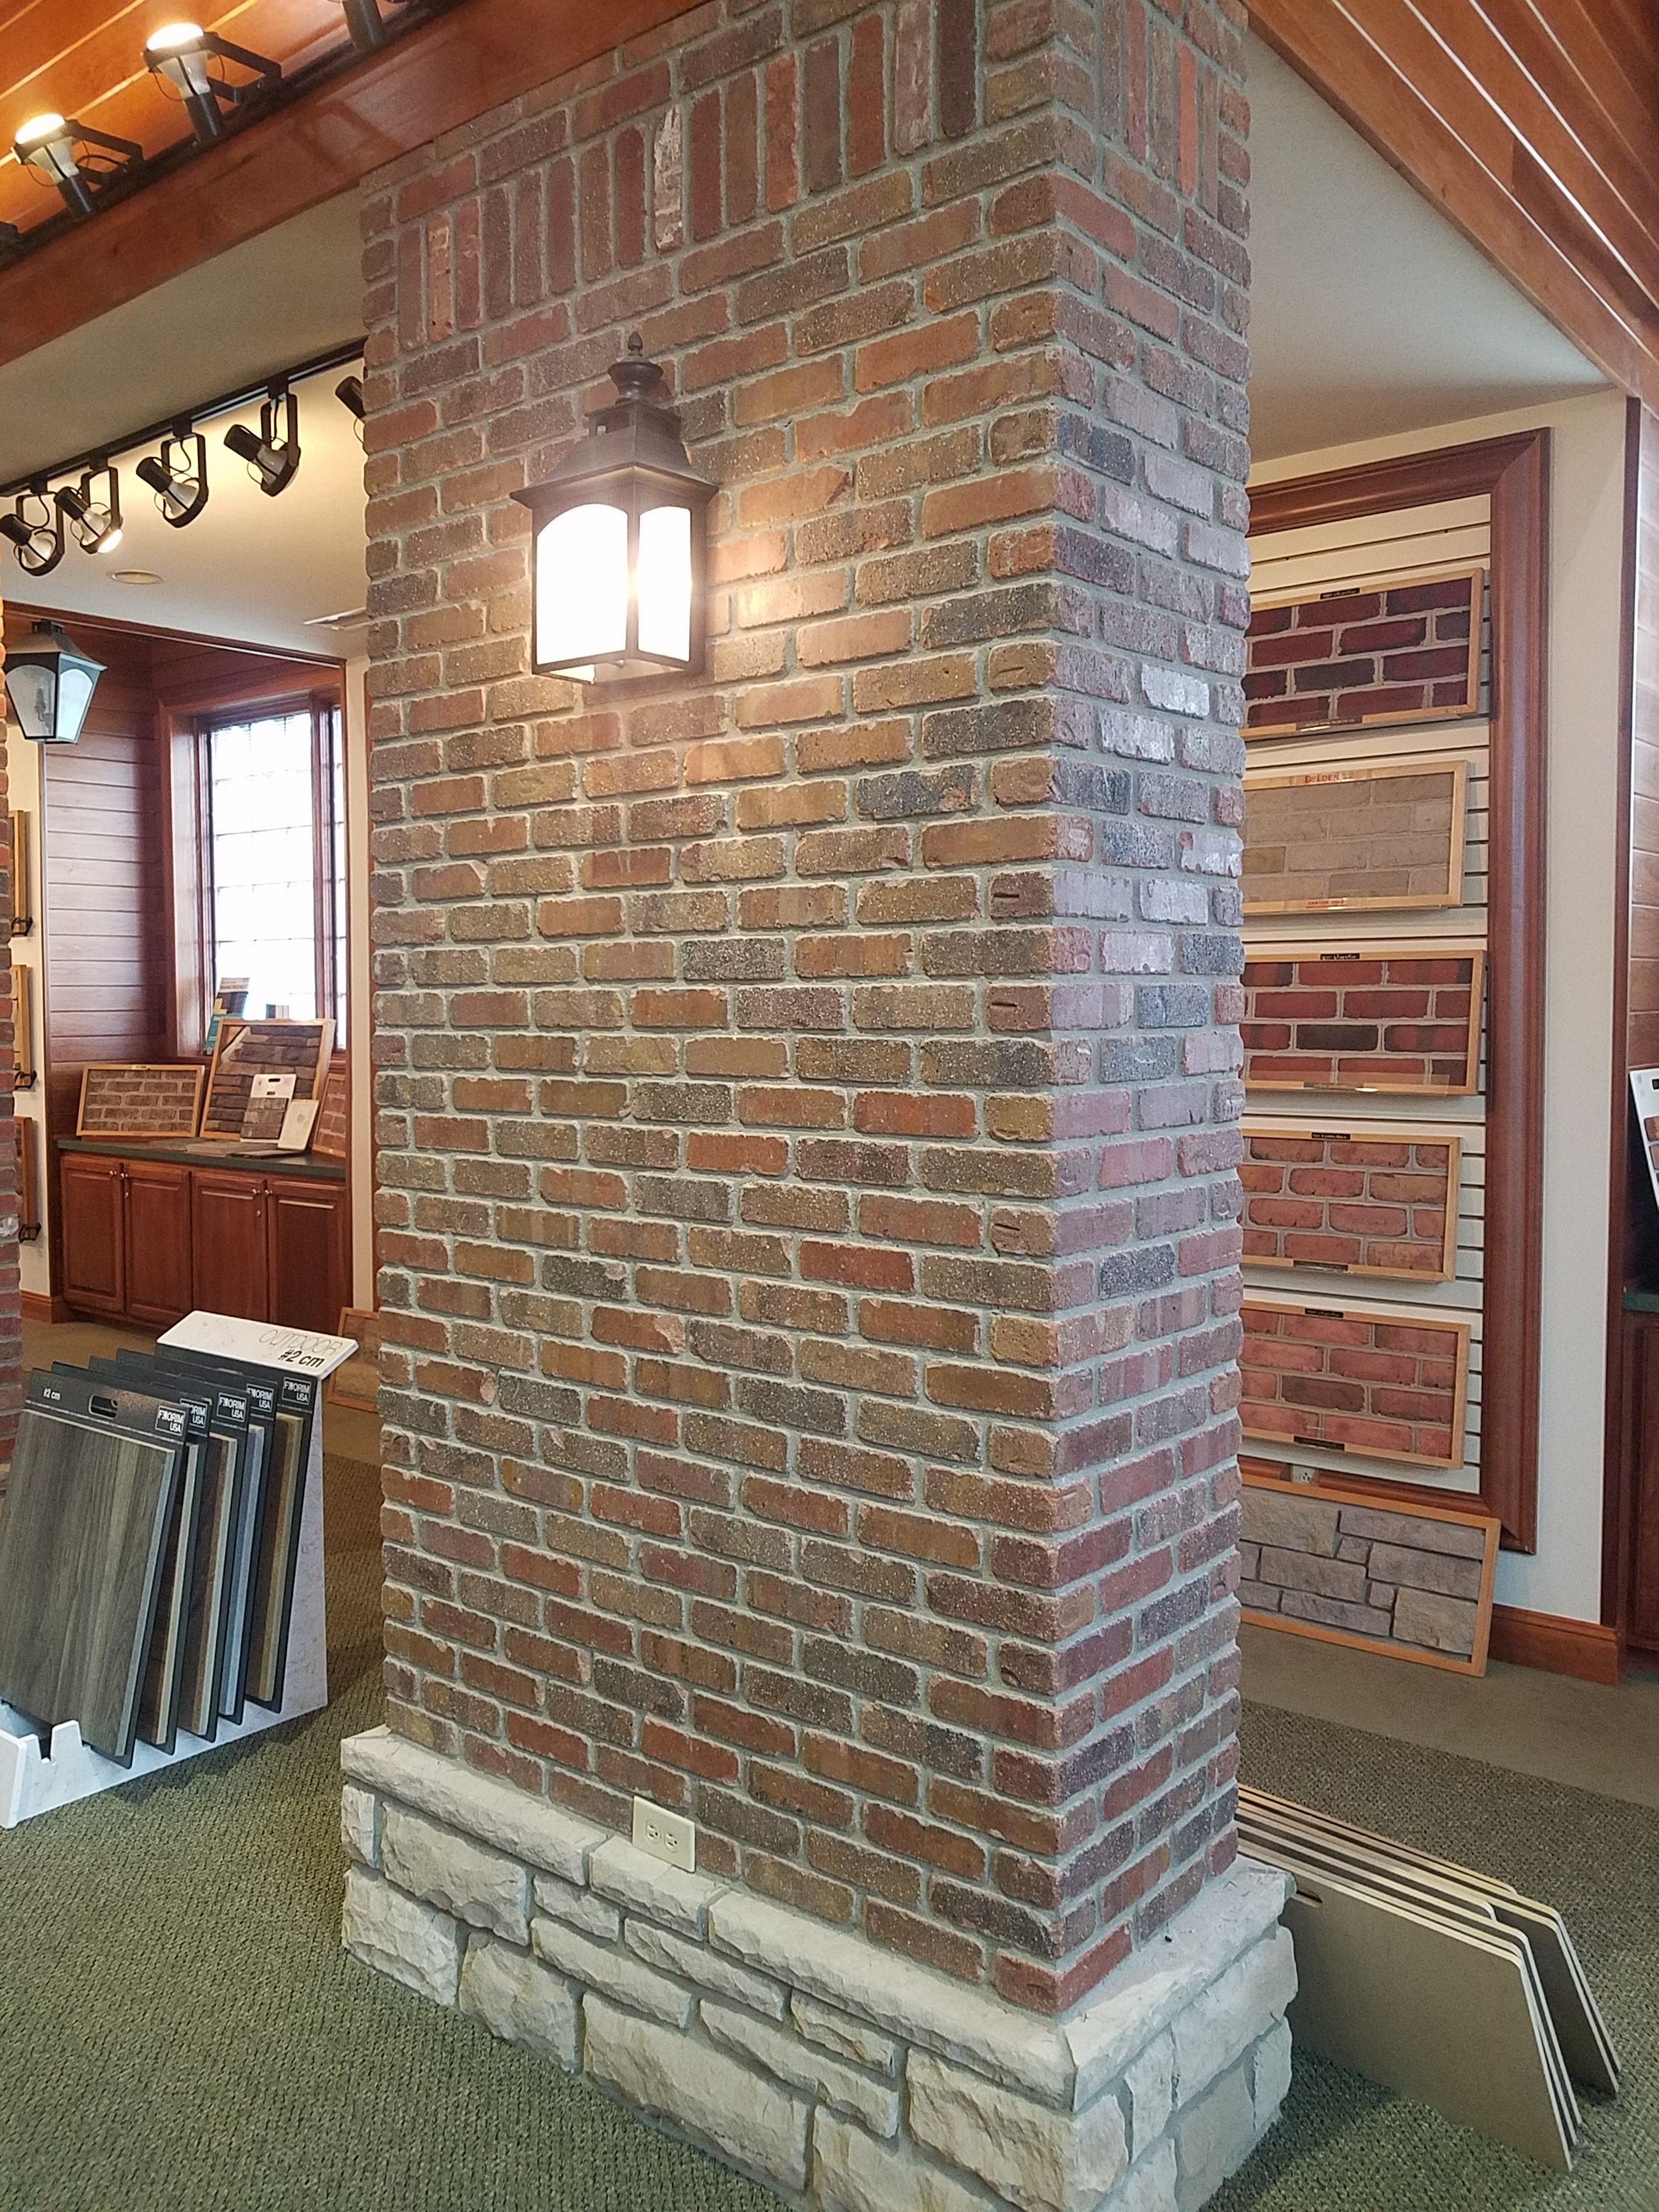 General Shale Thin Brick Smokestack Exposedbrick Brick Backsplash Thin Brick Brick